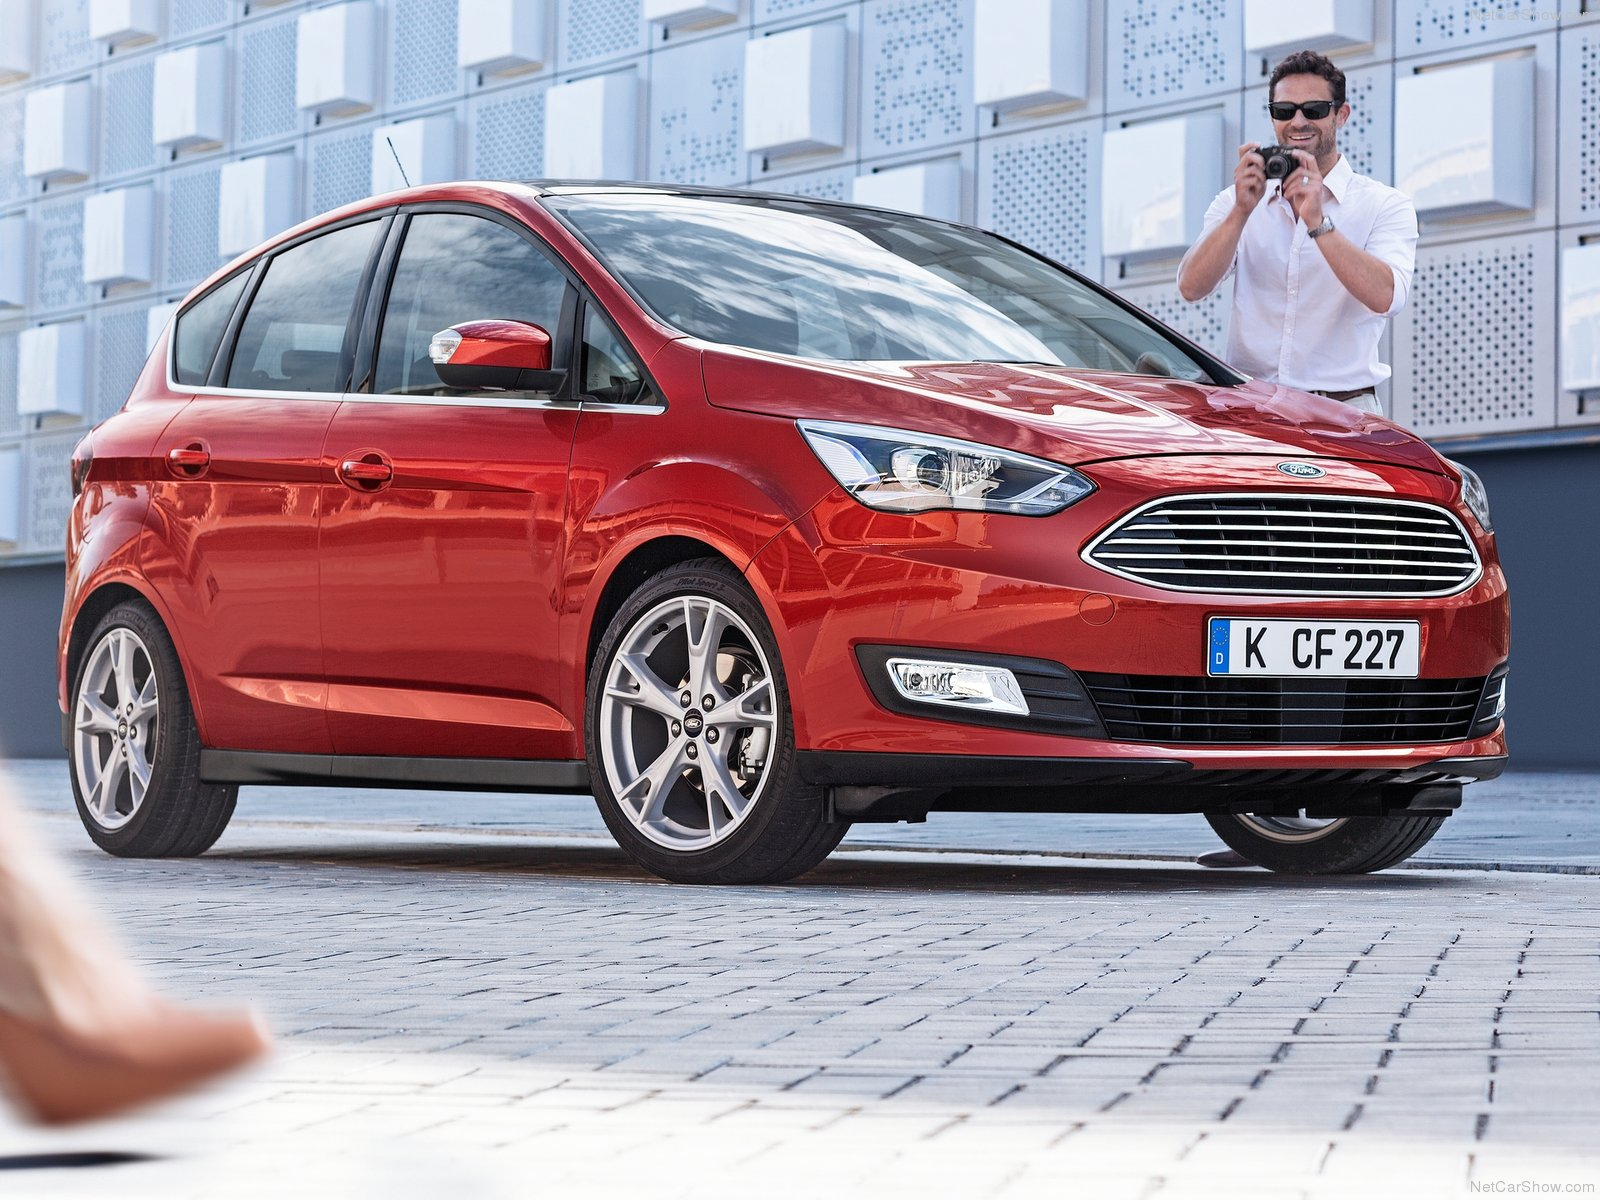 Ford C-MAX photo 129438